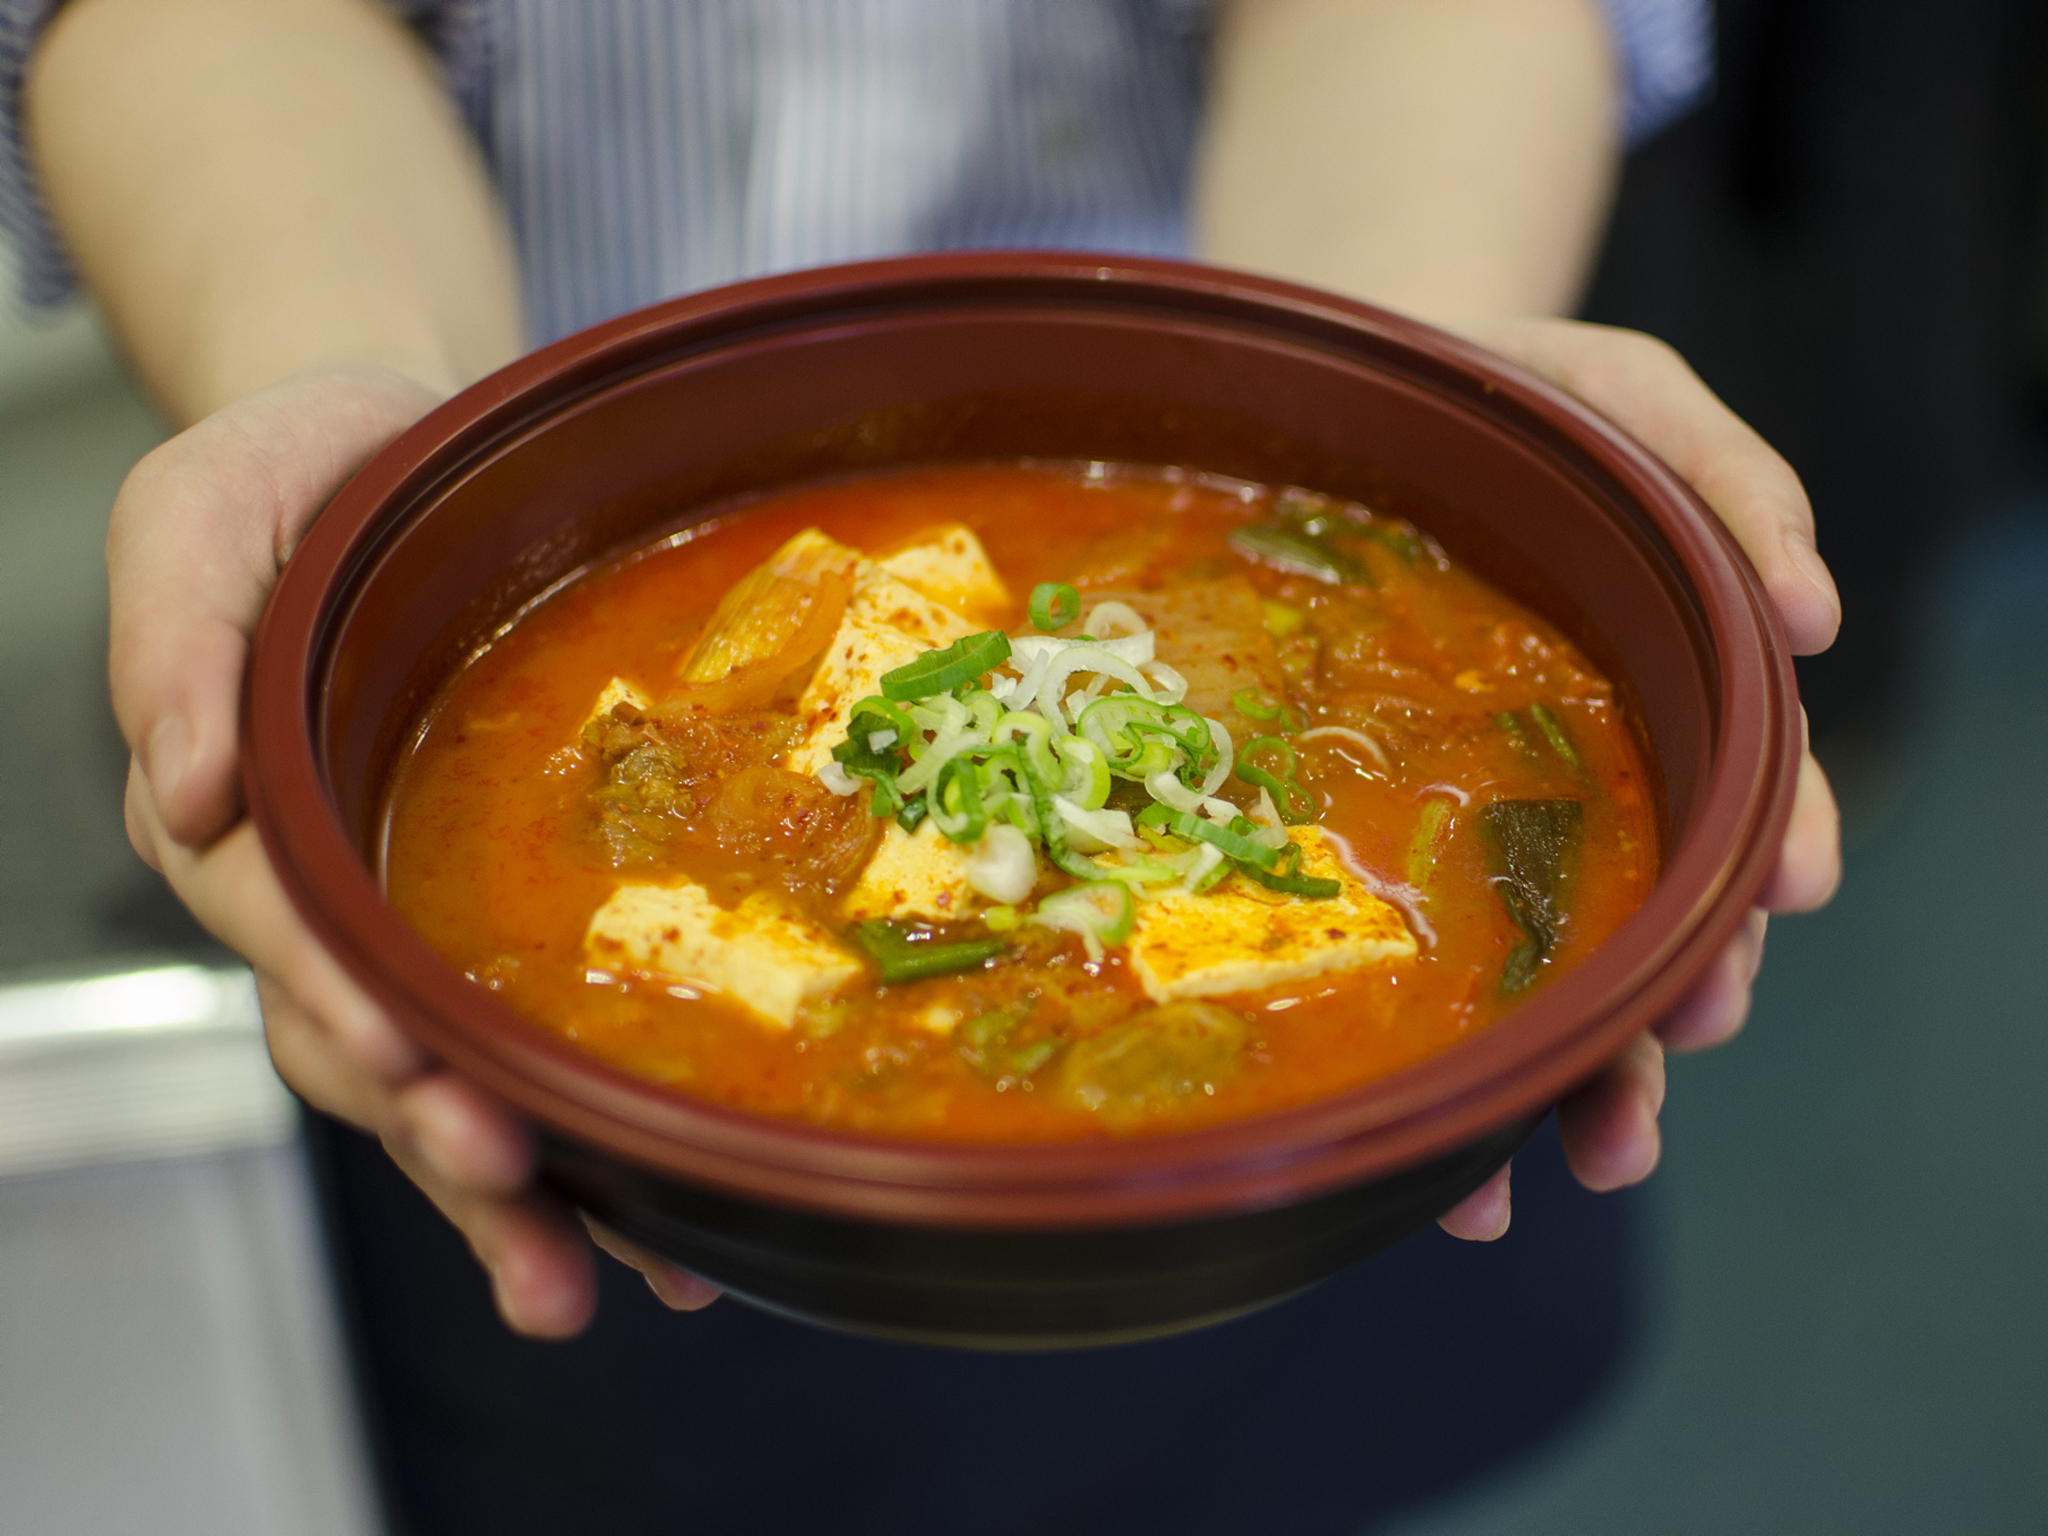 Soondooboo jjigae at Wellbeing Kitchen